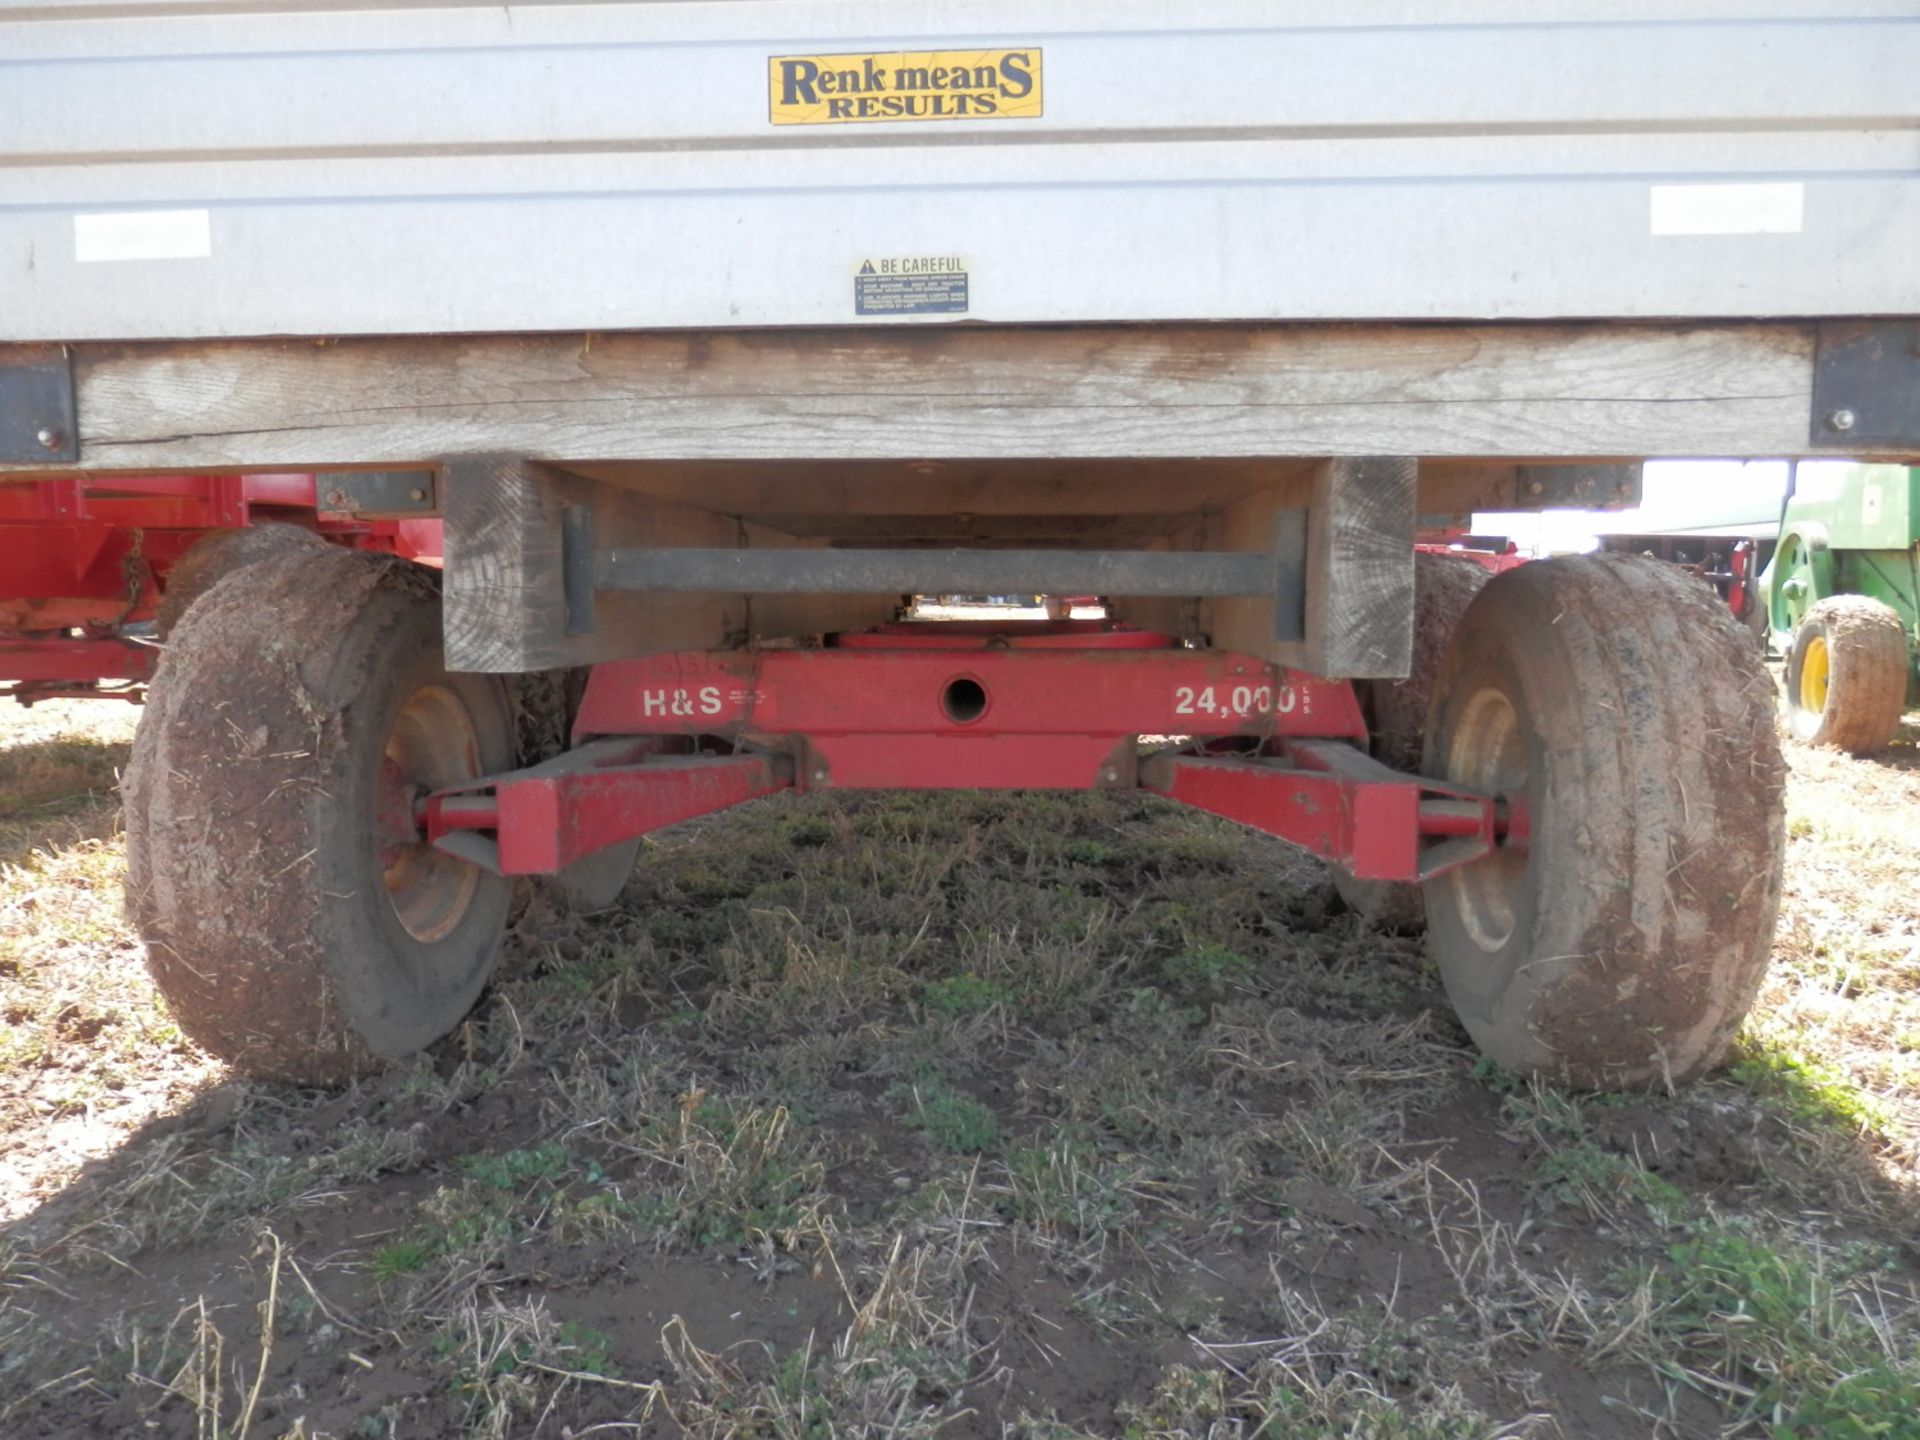 H&S XL-88 16' LH FORAGE WAGON - Image 4 of 6